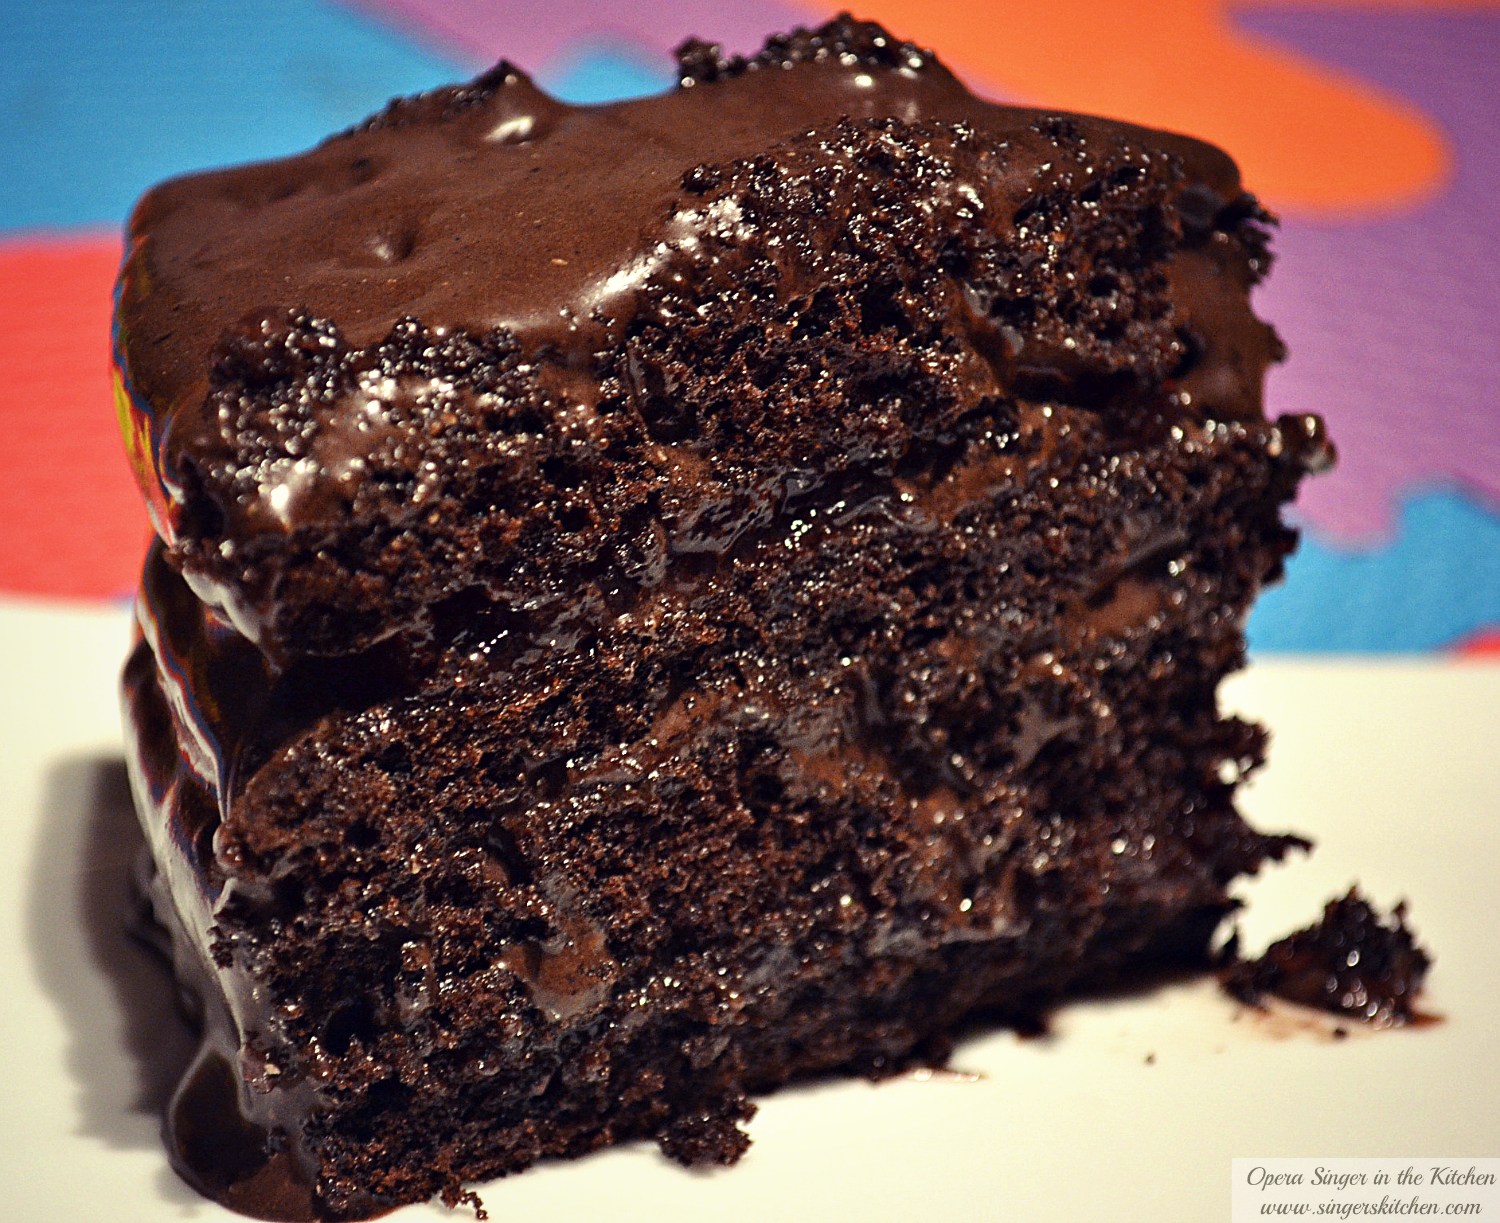 Super Moist Chocolate Cake With Cream Filling